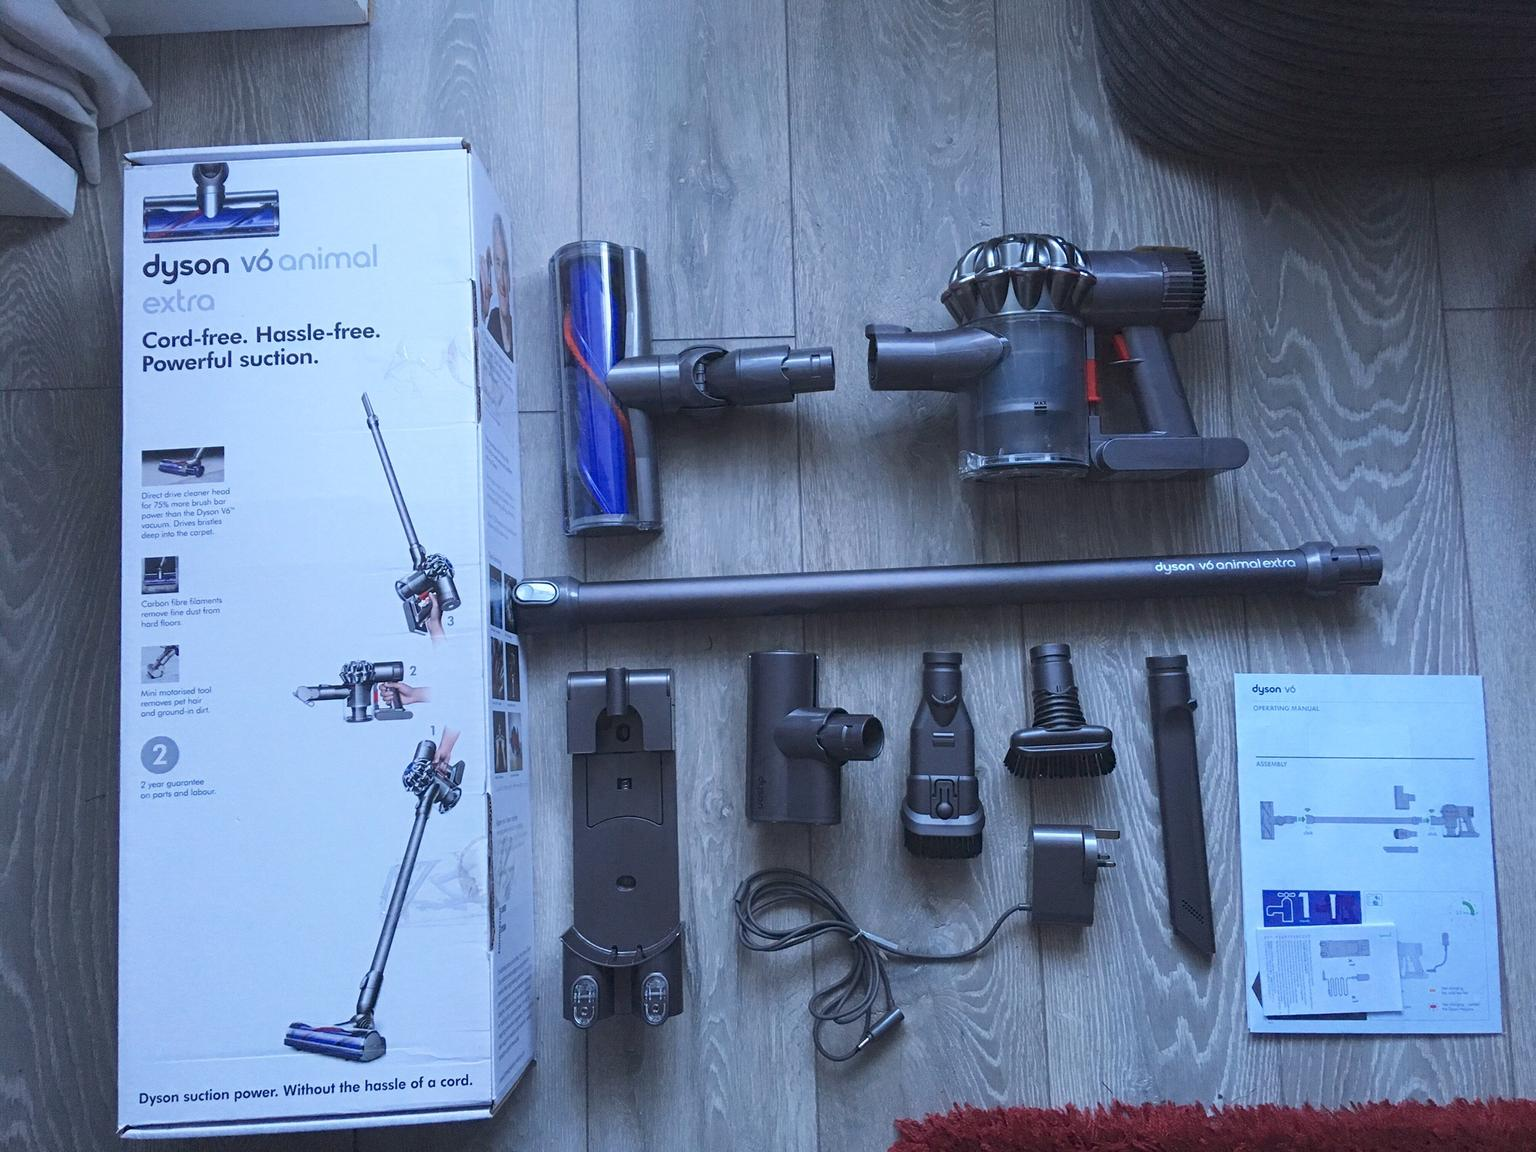 Image of: Motorhead Dyson V6 Animal Extra Cordless Vacuum Cleaner In Dn21 Gainsborough For 20000 Shpock Shpock Dyson V6 Animal Extra Cordless Vacuum Cleaner In Dn21 Gainsborough